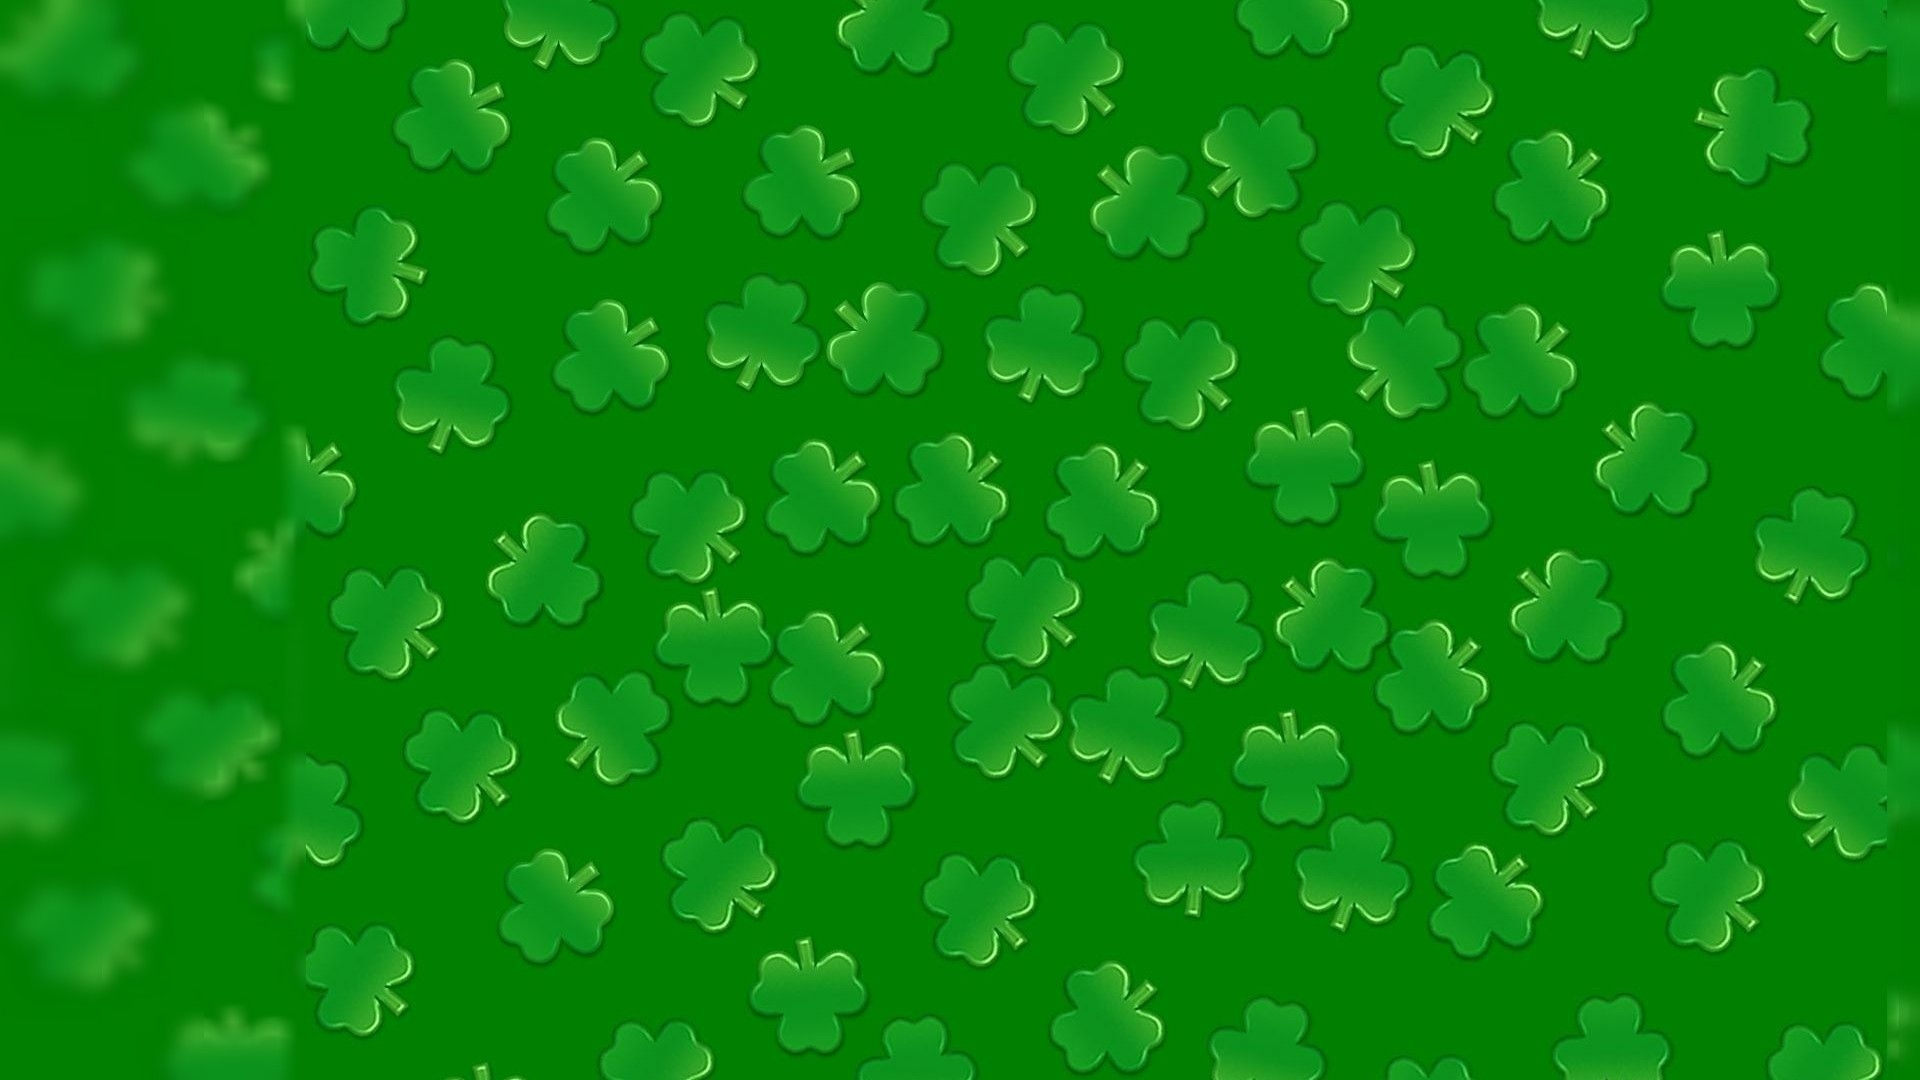 st. patrick's day wallpapers and background images - stmed